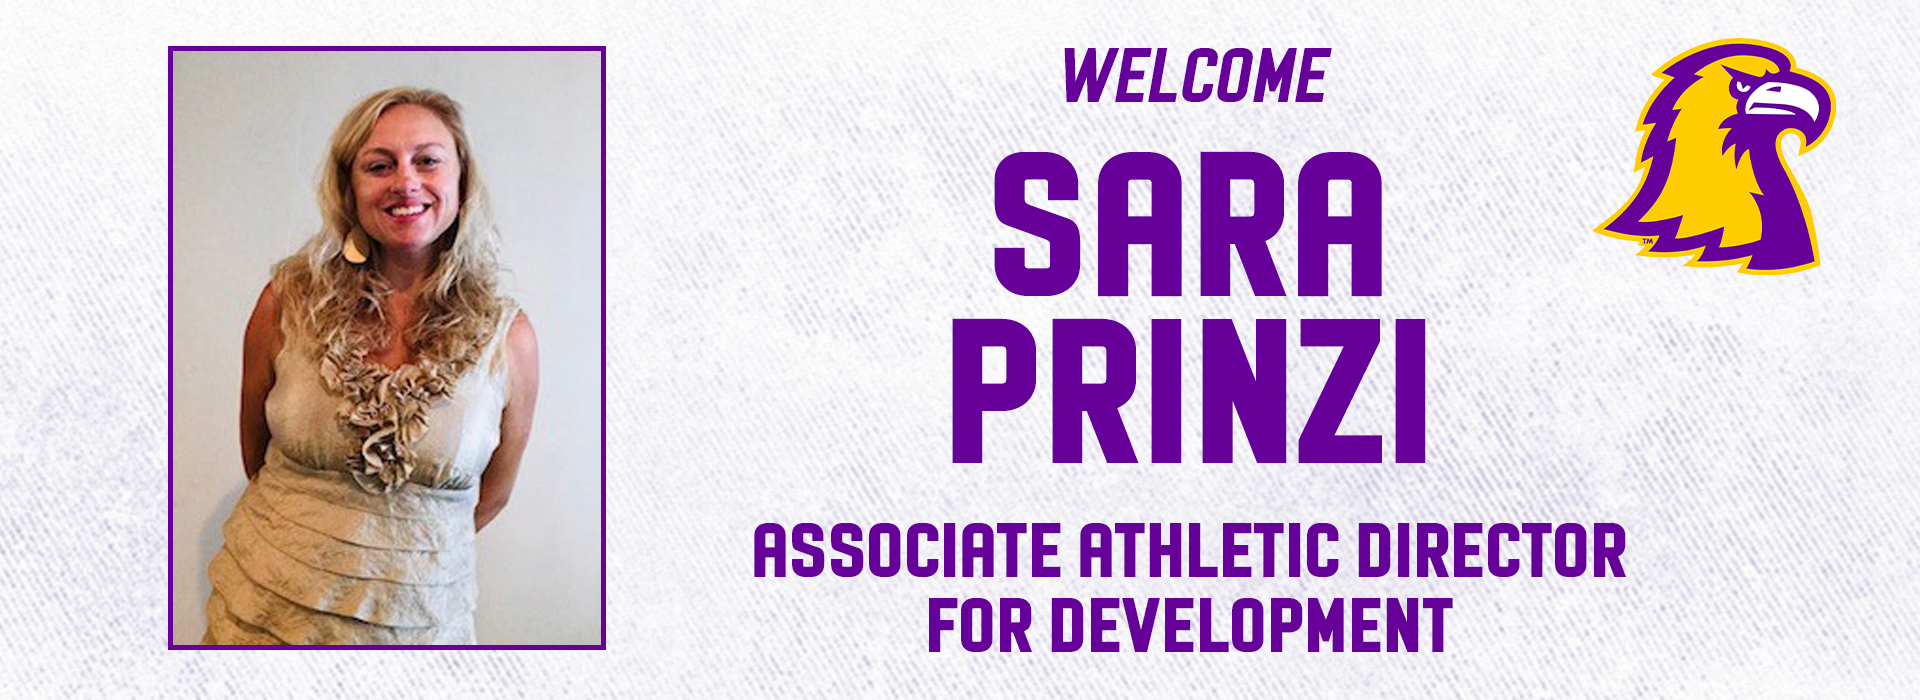 Sara Prinzi joins Tech Athletics as associate athletic director for development